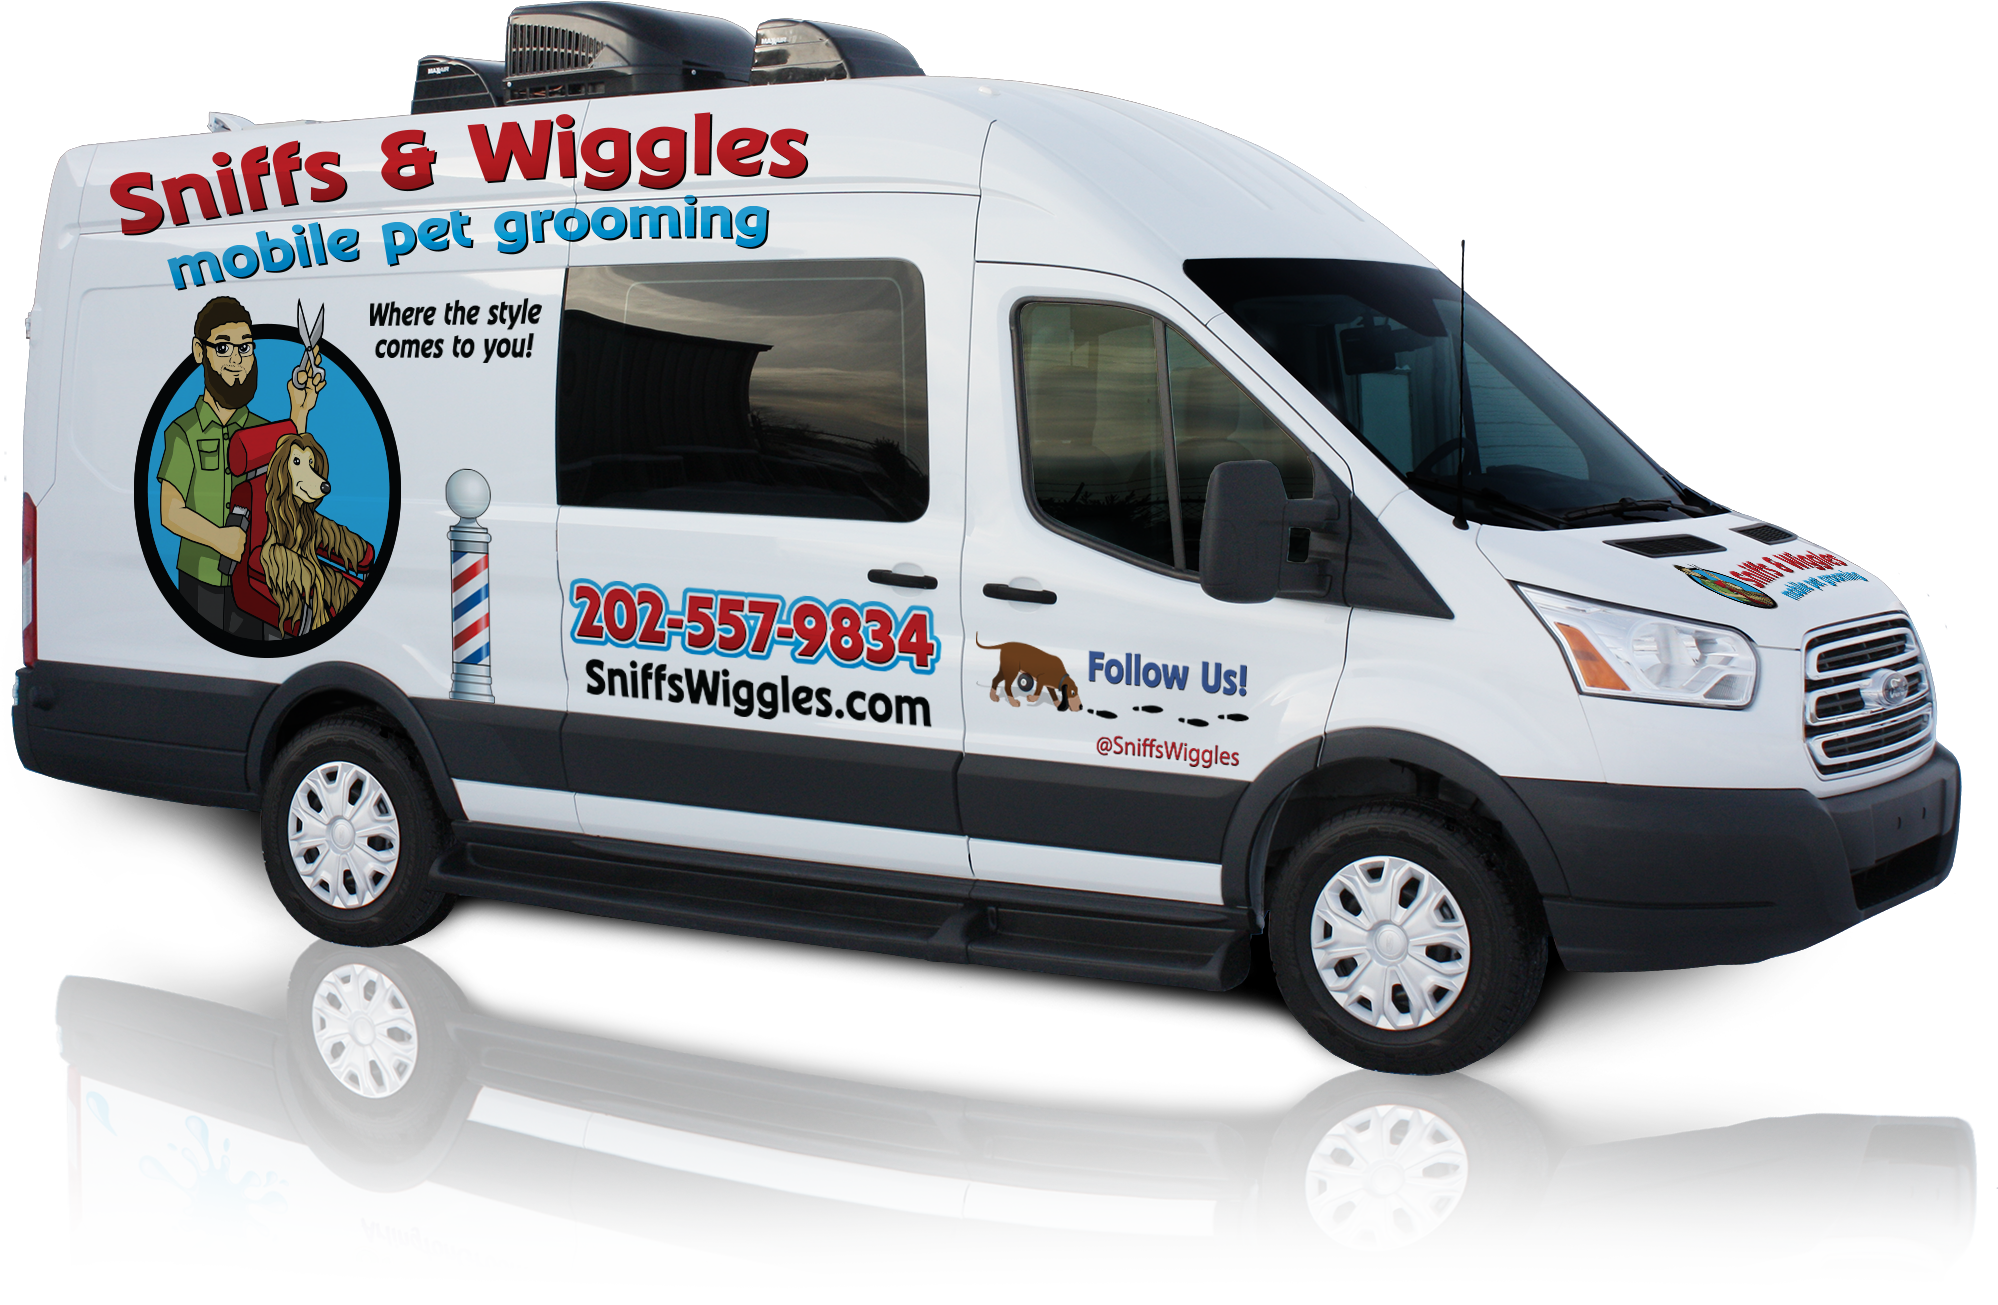 Sniffs and Wiggles Mobile Grooming